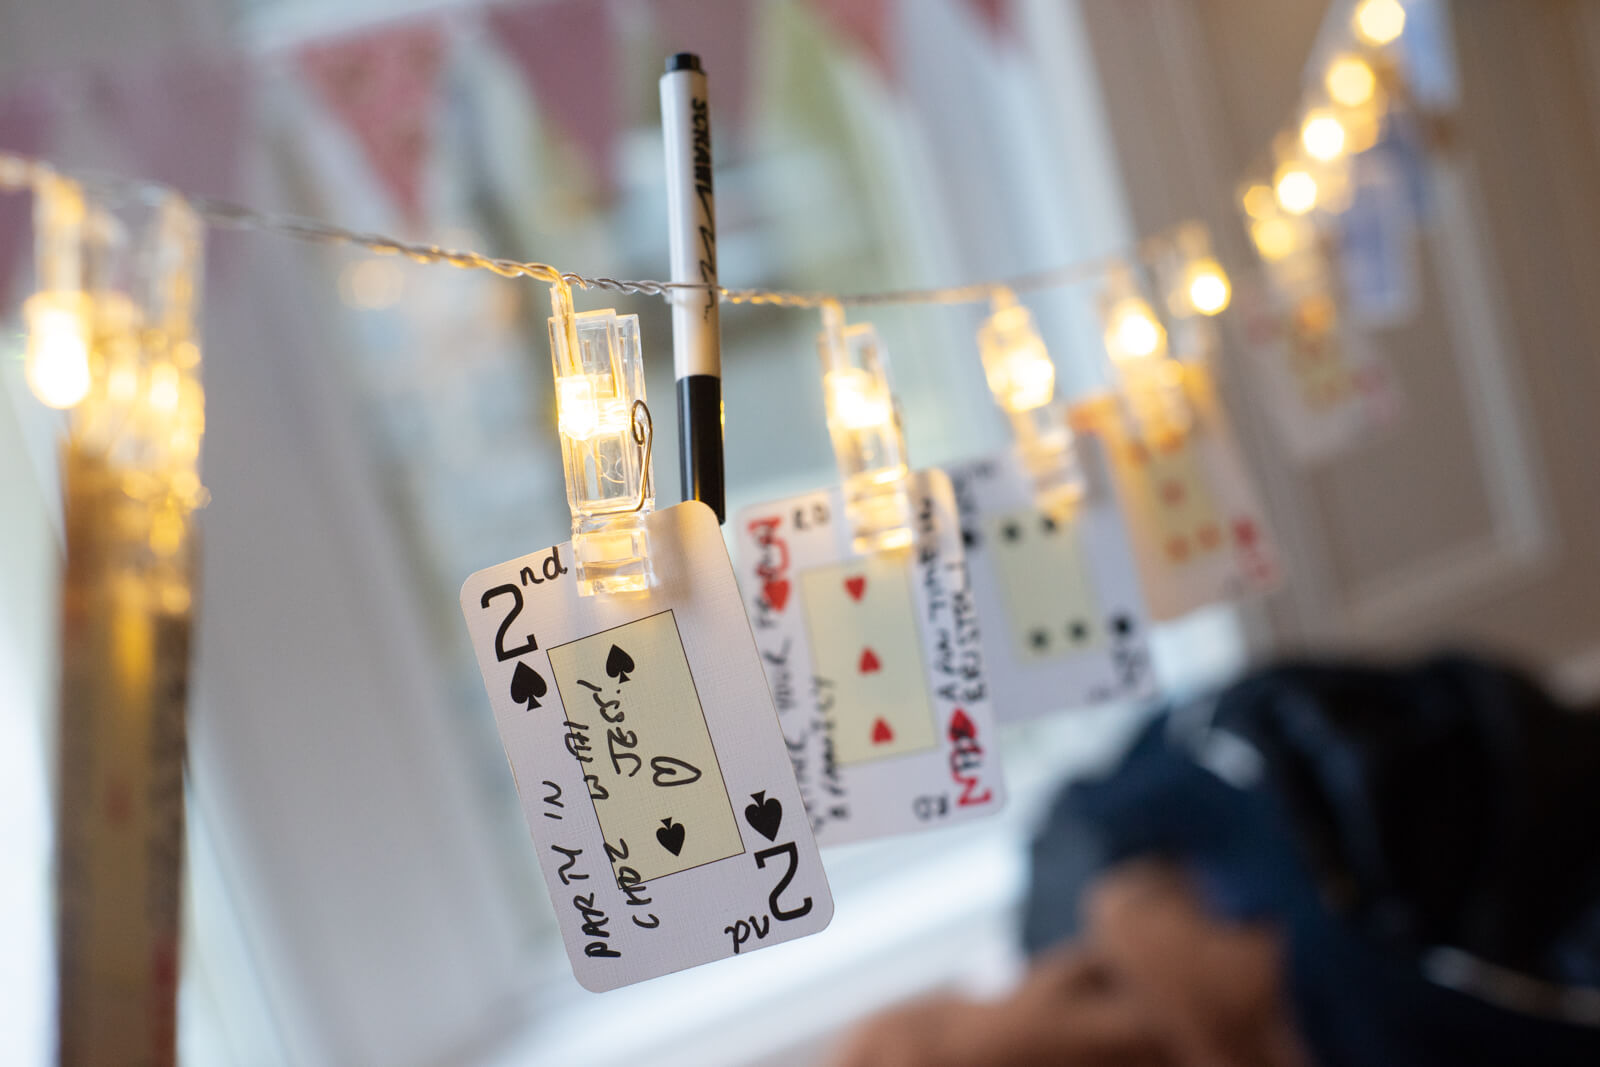 Wedding decorations of playing cards with guests' messages hang from a string of fairy lights